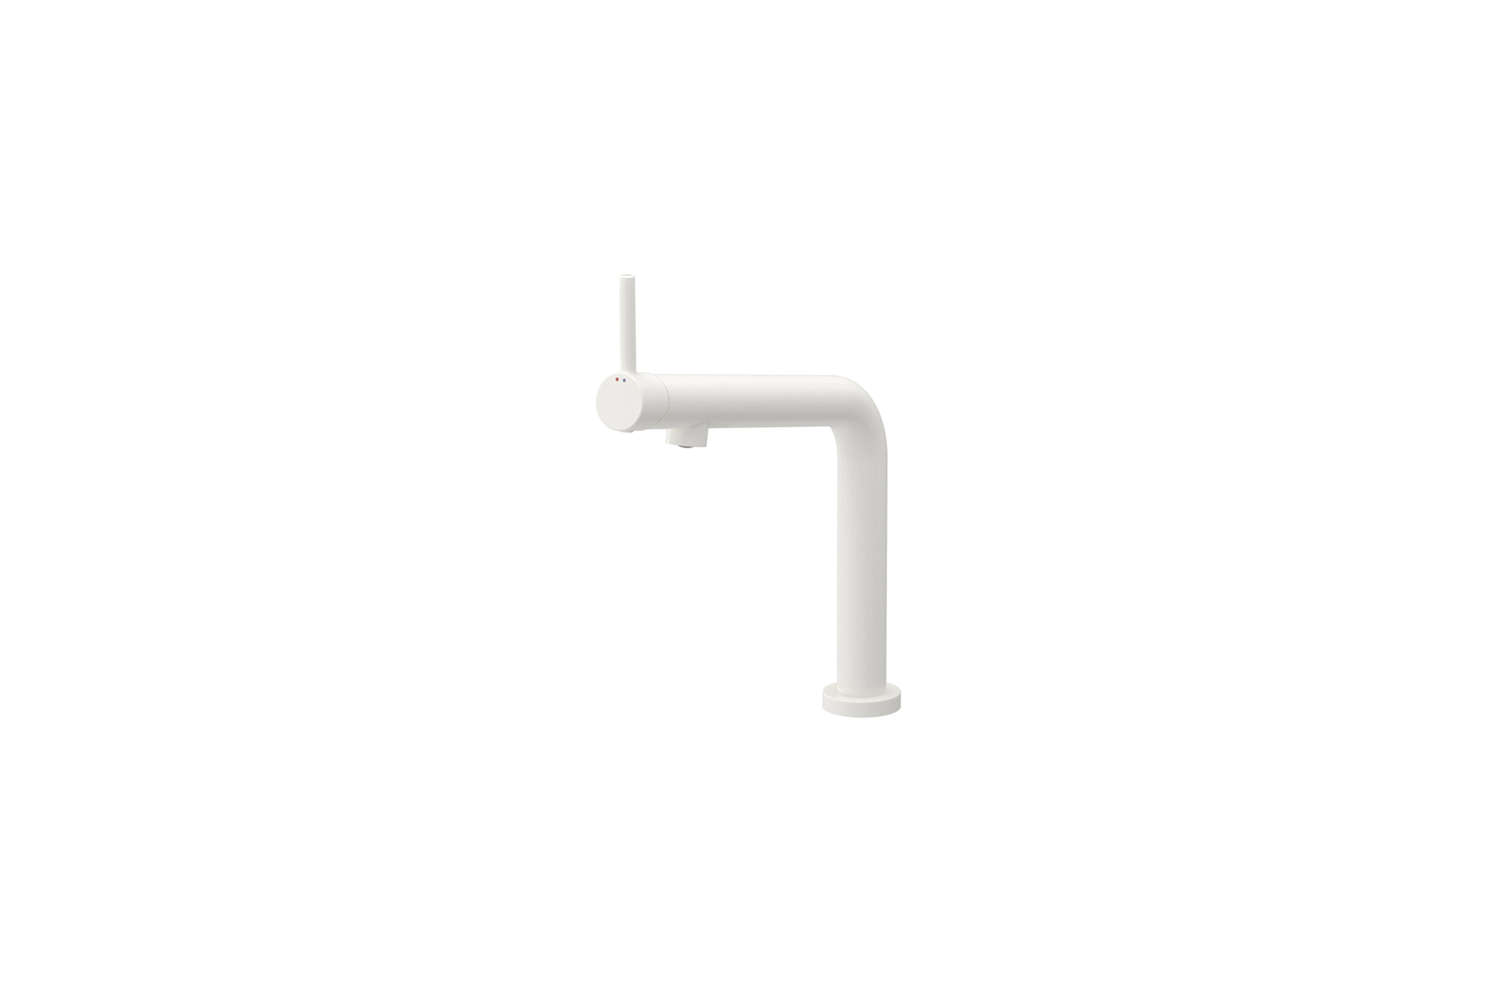 10 Easy Pieces Modern Matte White Faucets Ikea&#8\2\17;s Bosjön Kitchen Faucet is made of white powder coated brass; \$\169 at Ikea. It&#8\2\17;s designed for the kitchen but can be used in the bath too.